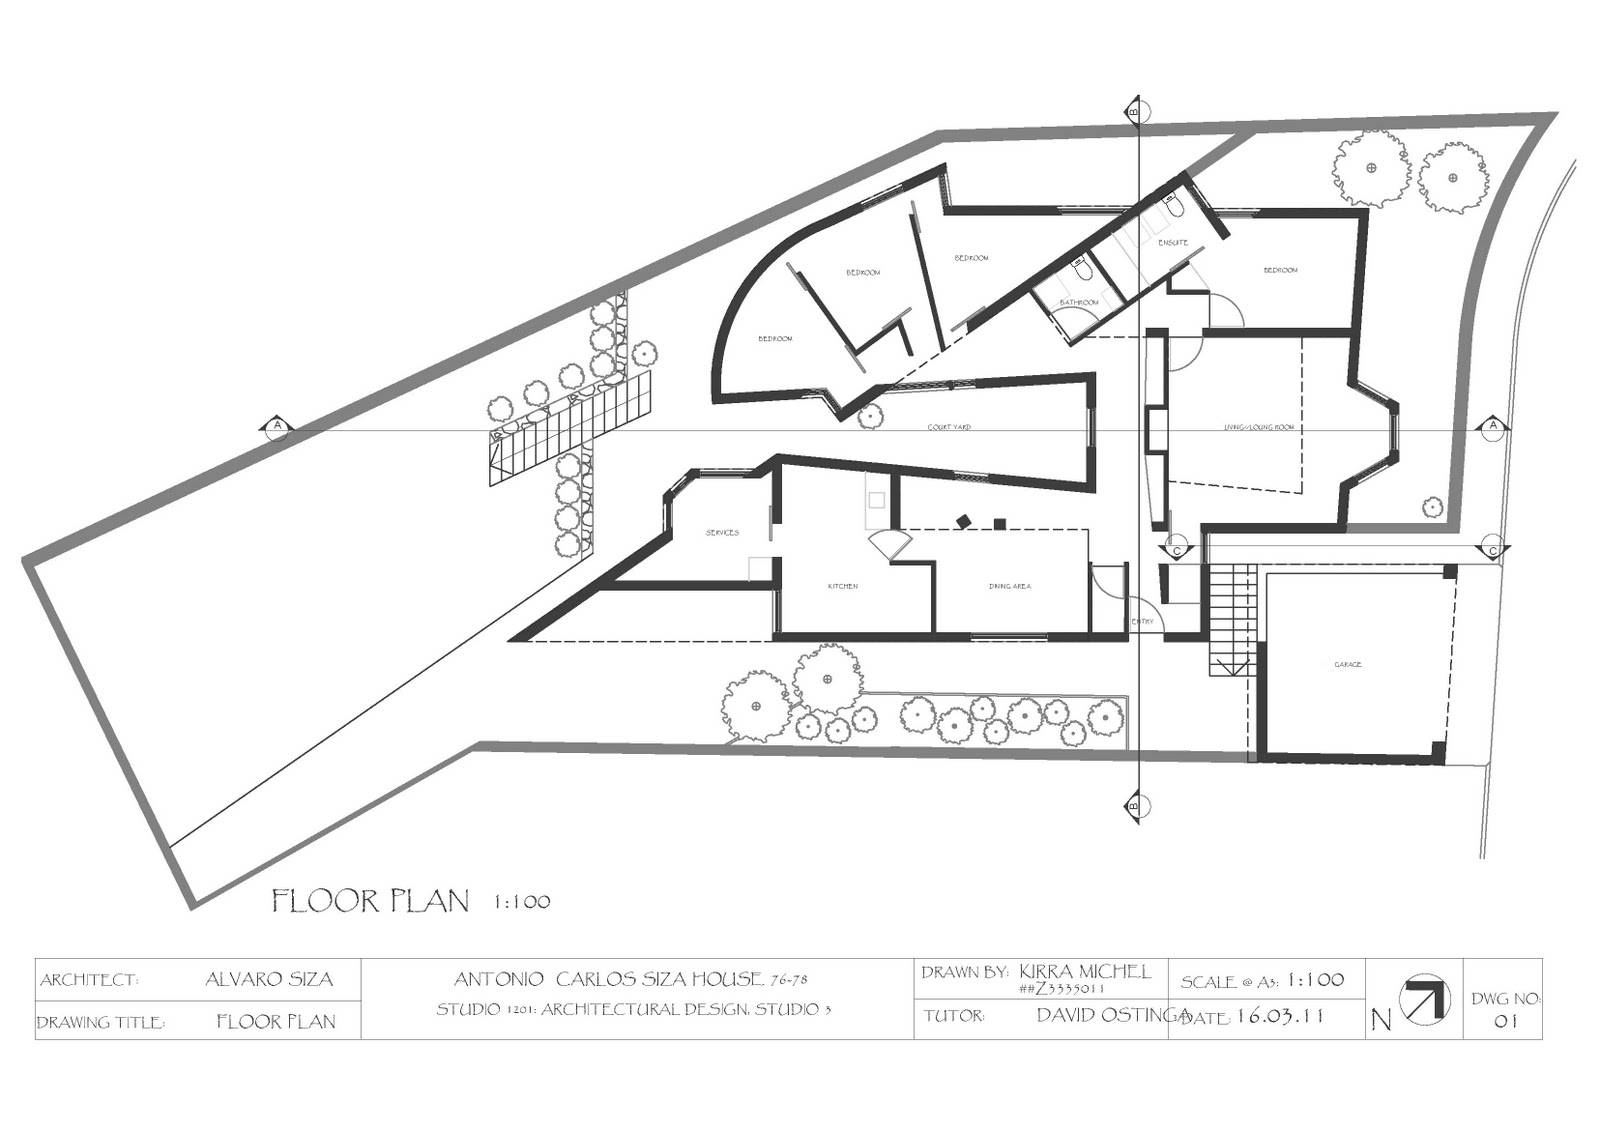 Siza layout siza 1600 1131 elevations plans for House layout plans